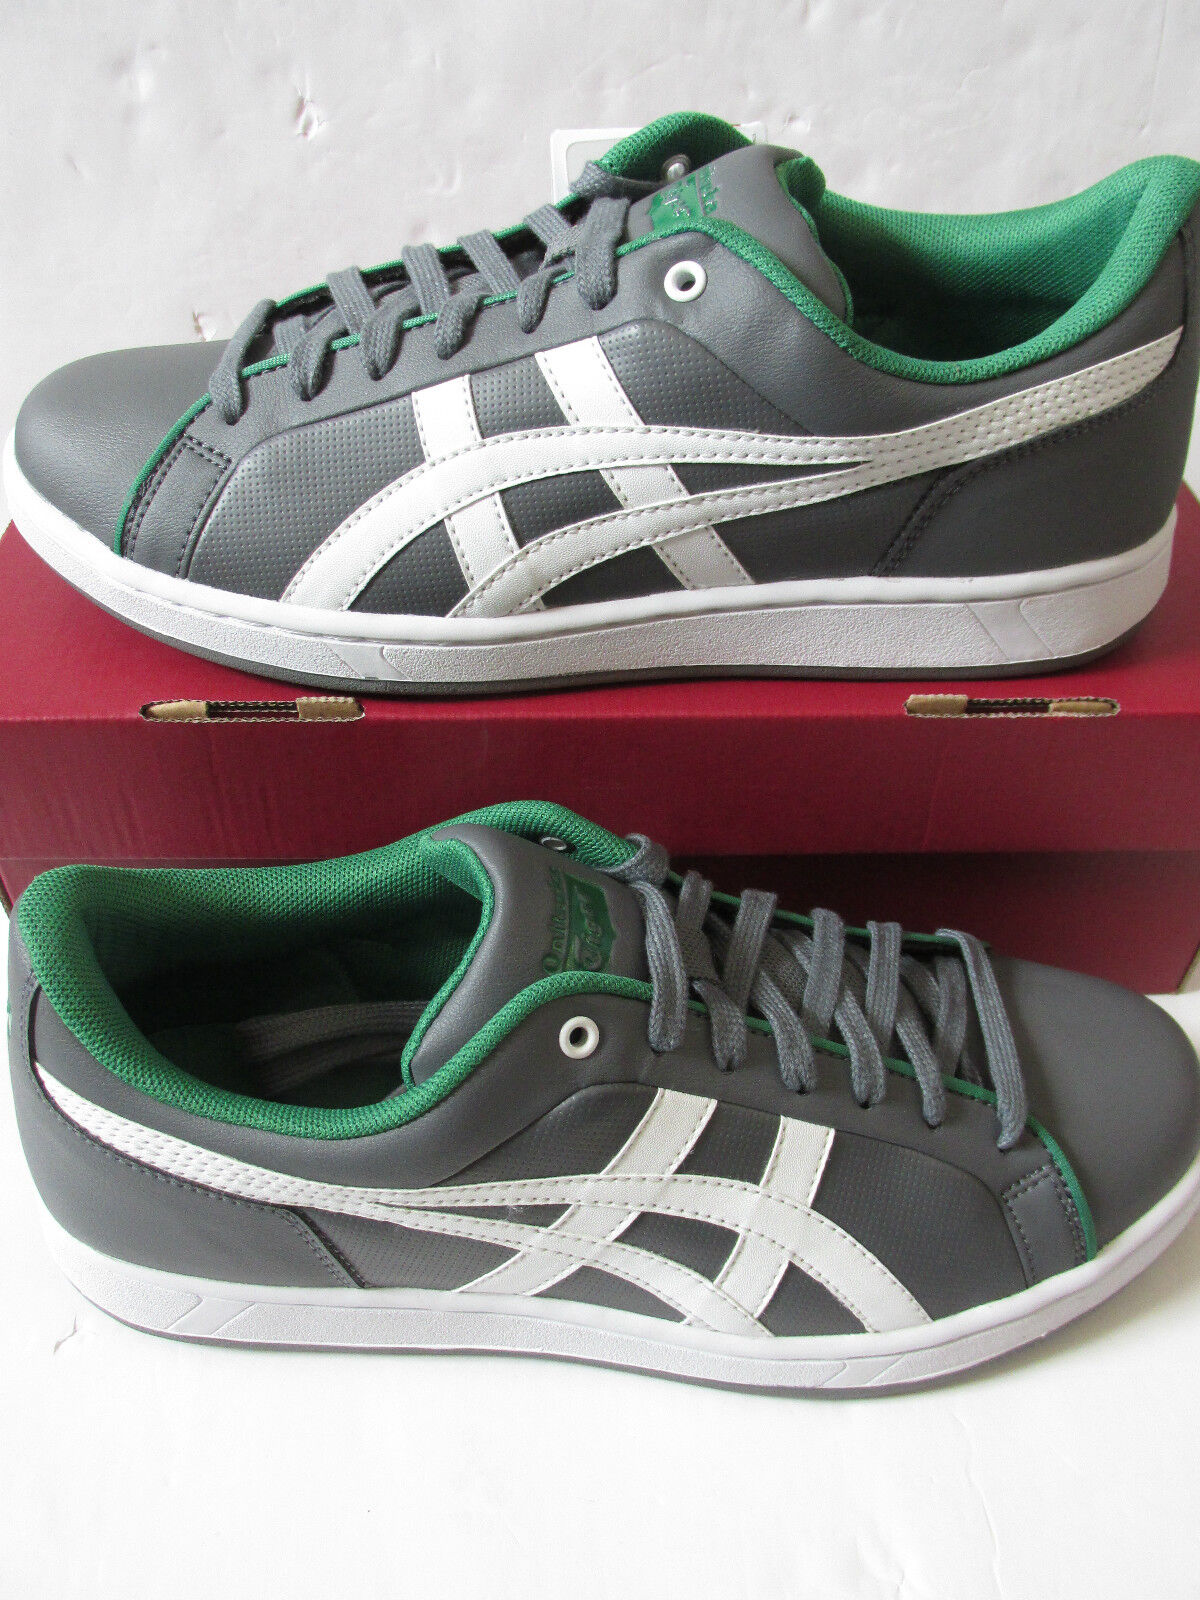 onitsuka tiger larally trainers D4K4Y 1101 sneakers shoes asics